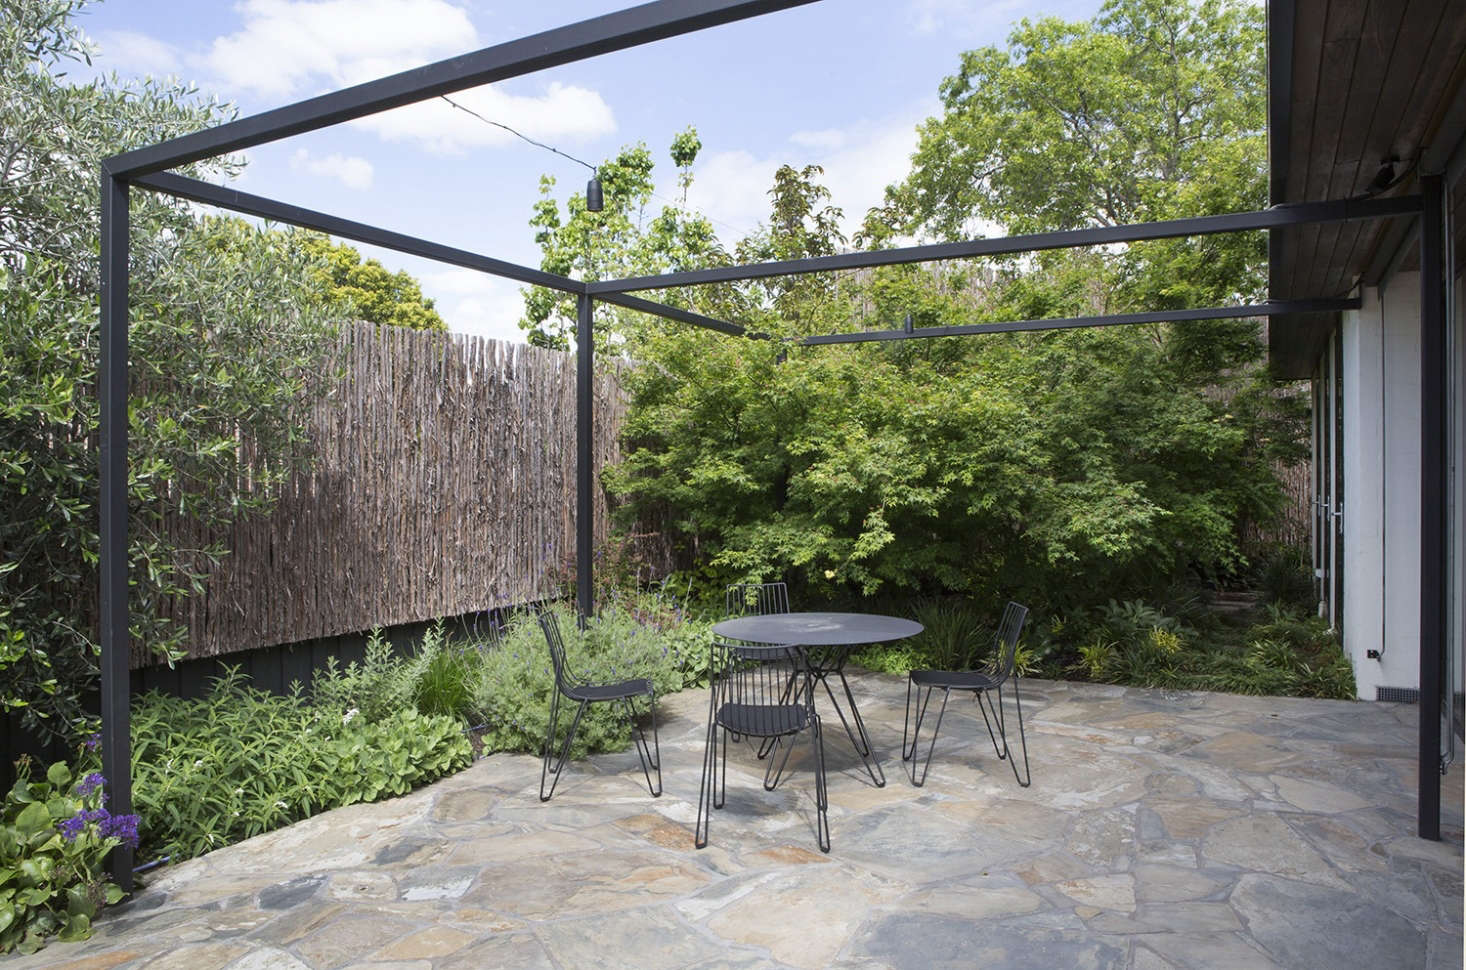 pergola by grounded gardens - Garden Design Trends 2015